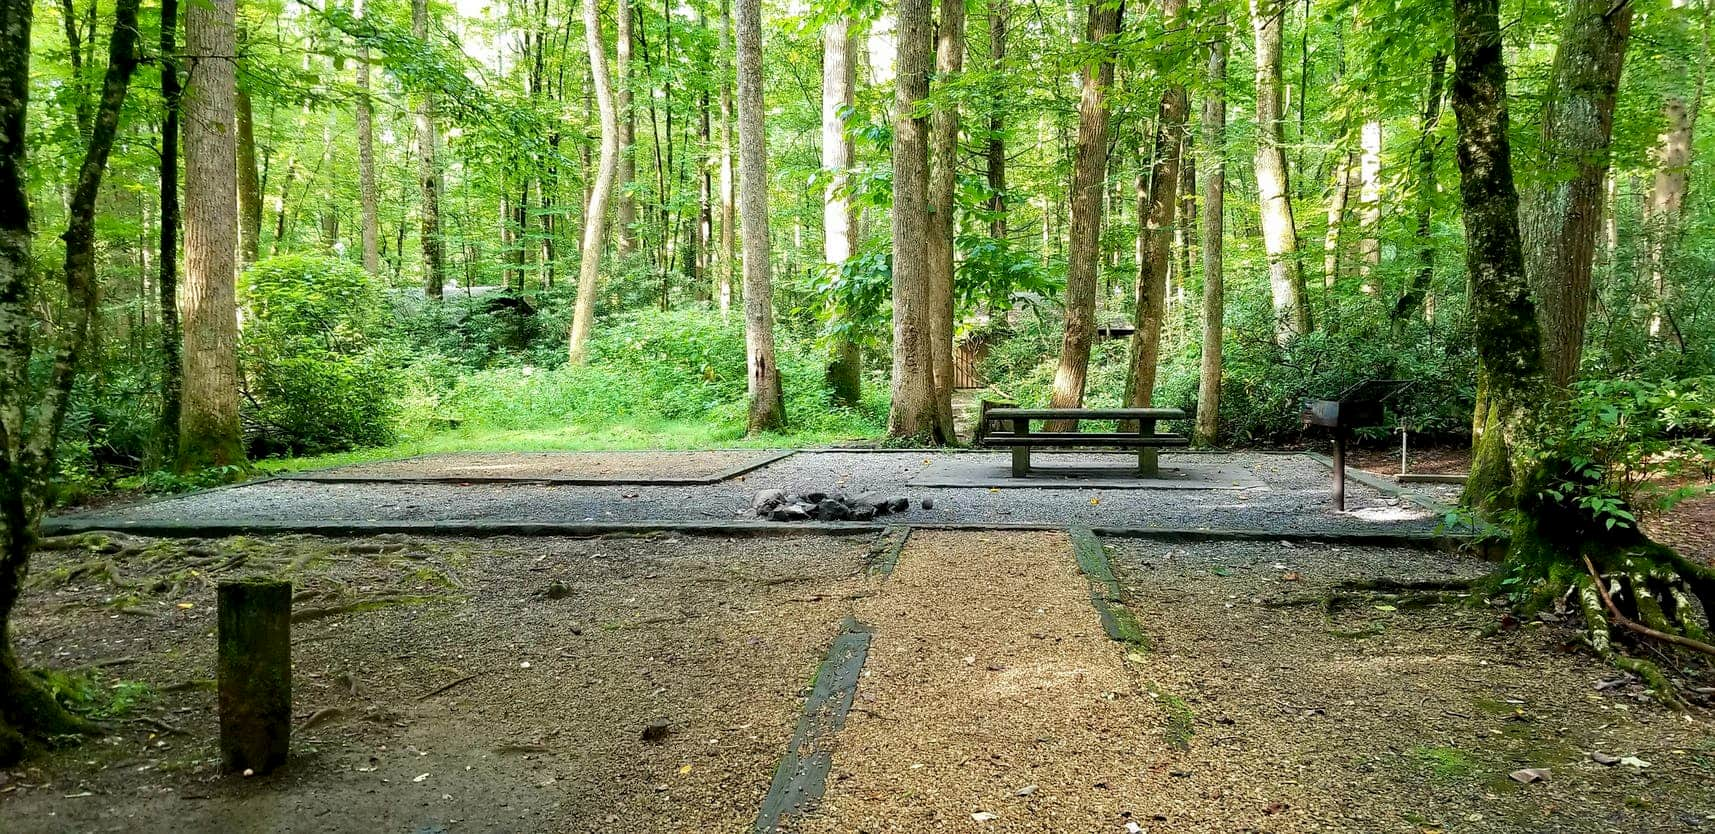 Sunlight spilling in to lush forested campsite with gravel and picnic table.